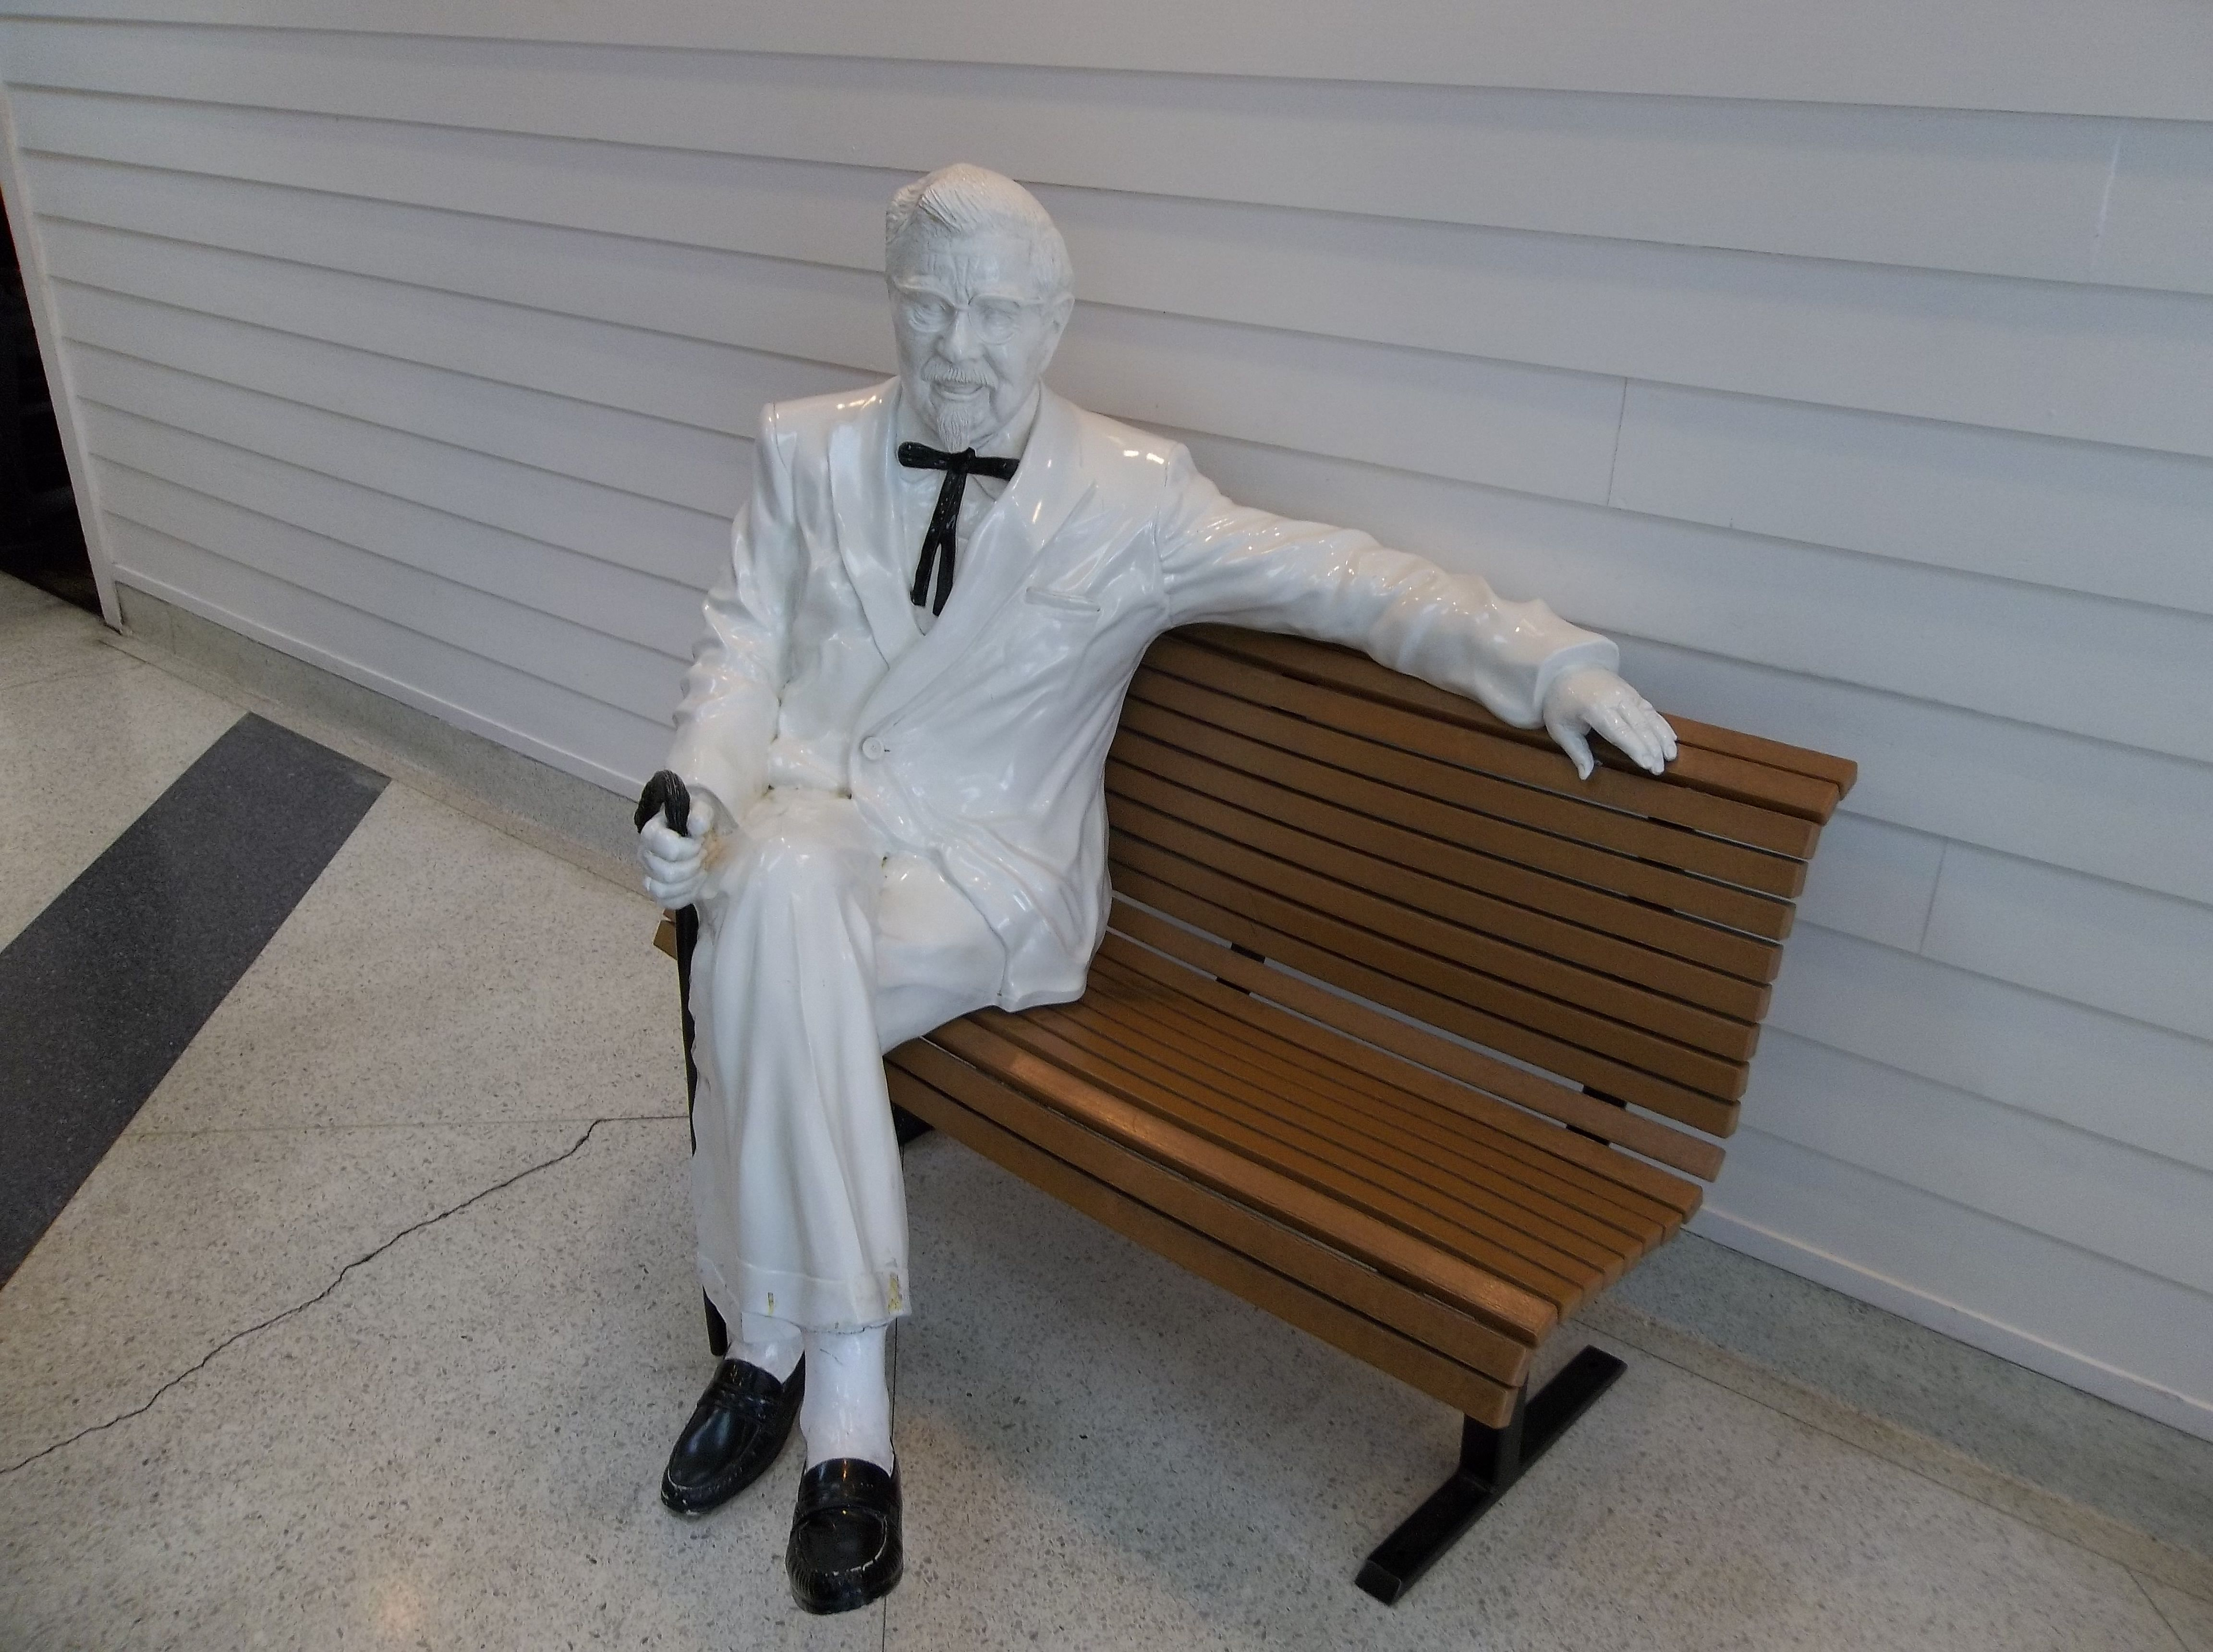 Colonel Sanders Statue On A Bench Inside The Birthplace Of